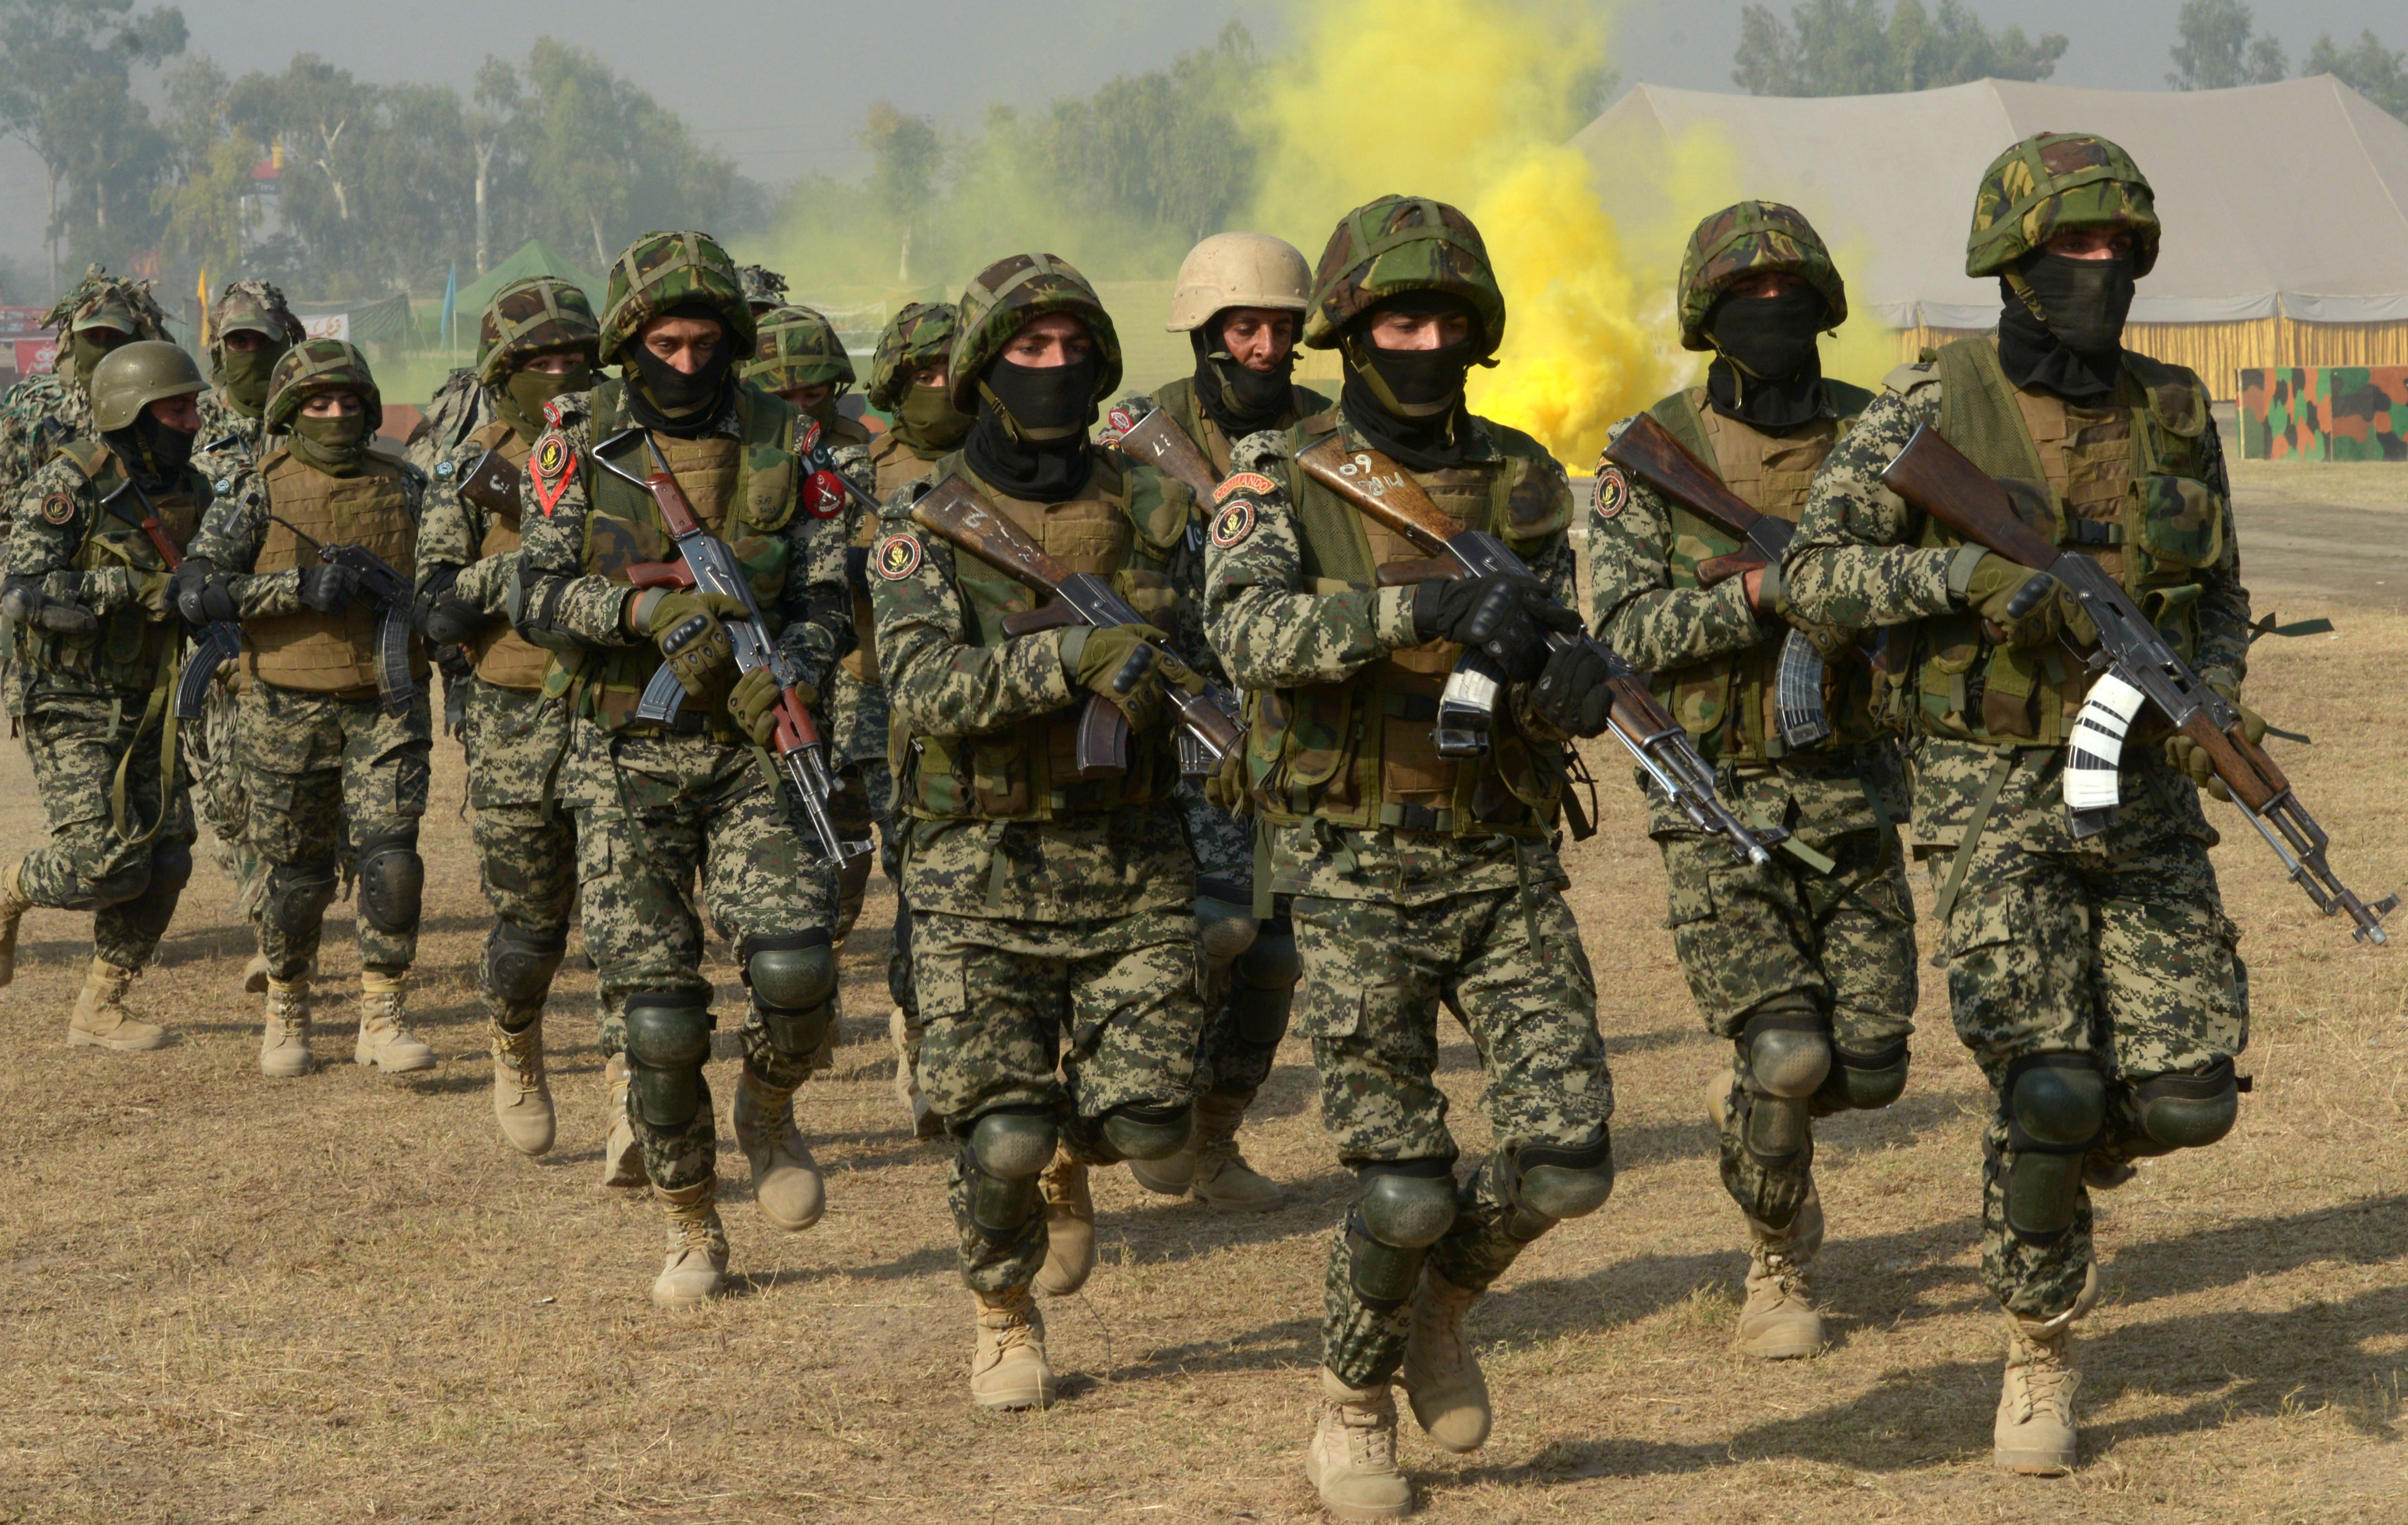 Pakistan shifts military strategy to fight ISIS, Taliban